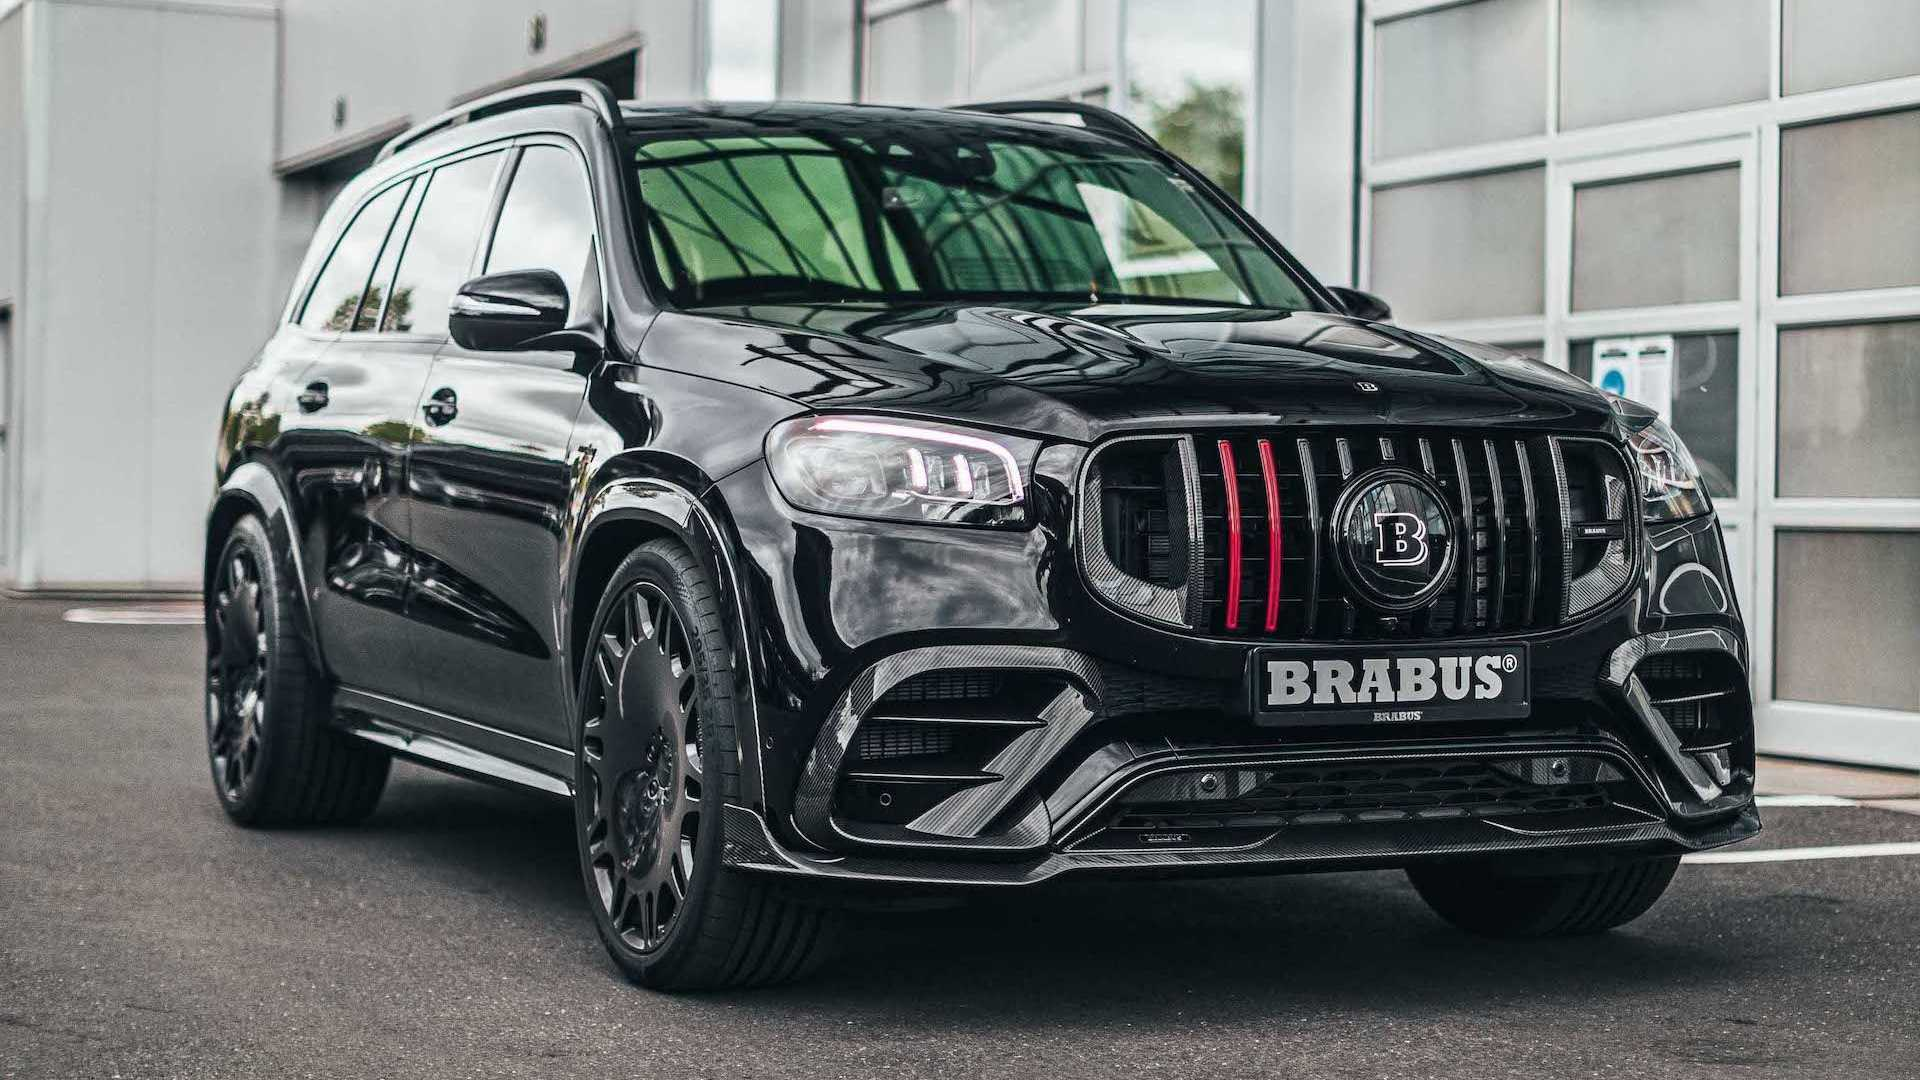 """Brabus counts among the most successful and prolific tuners when it comes to customizing Mercedes-Benz cars. After revealing the """"Brabus 800"""" take on the Mercedes-AMG E63 S, the company has now complemented the range with two other conversions based on the AMG GLE 63s and the AMG GLS 63. For now, let us focus on the latter."""